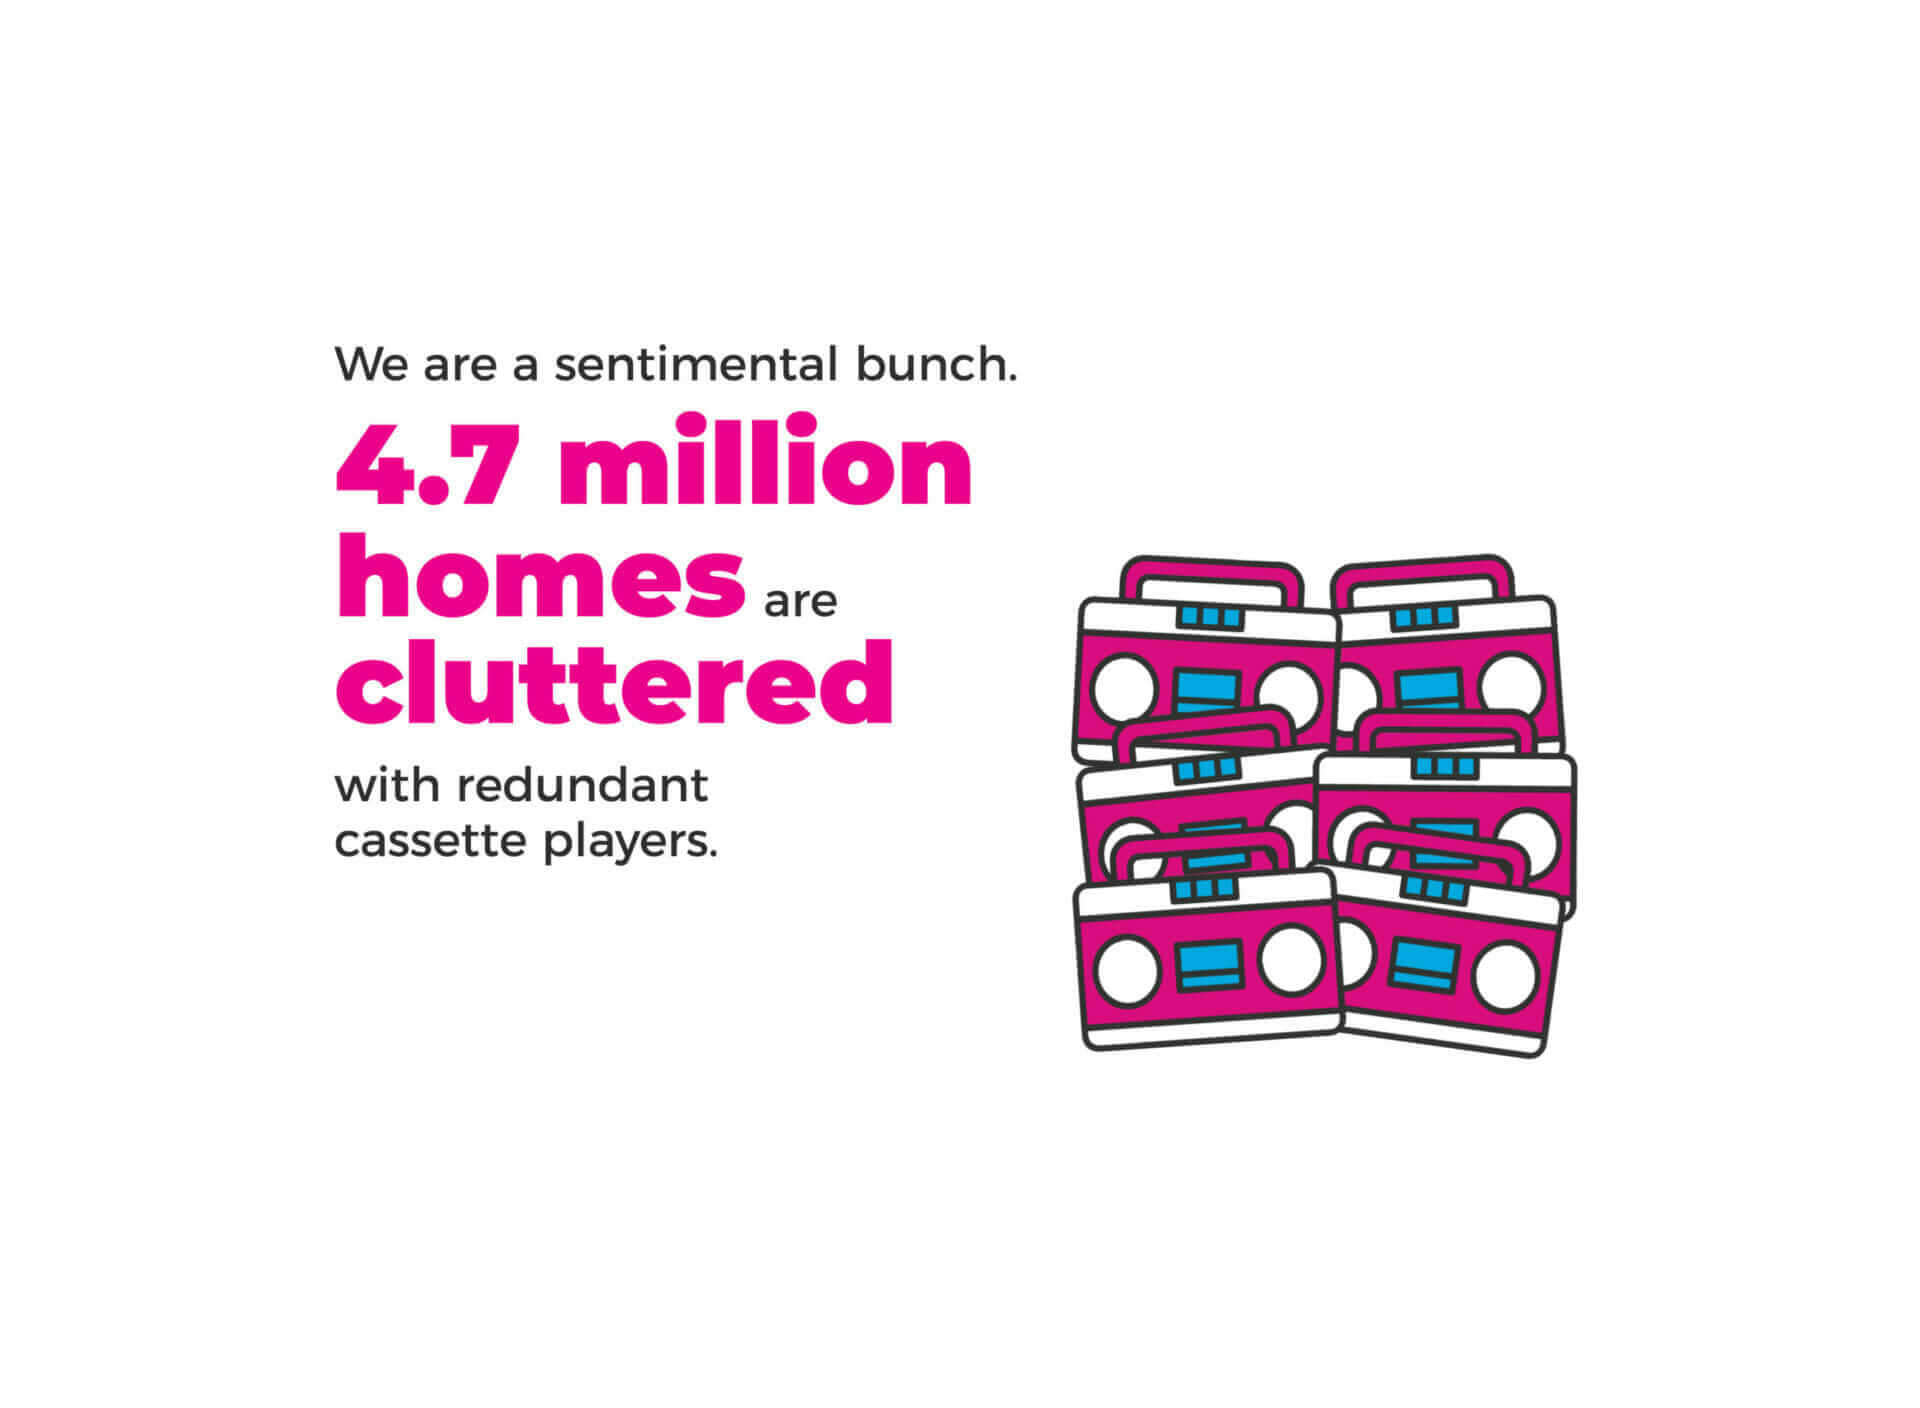 illustration of the fact that 4.7 million homes are hoarding redundant cassette players